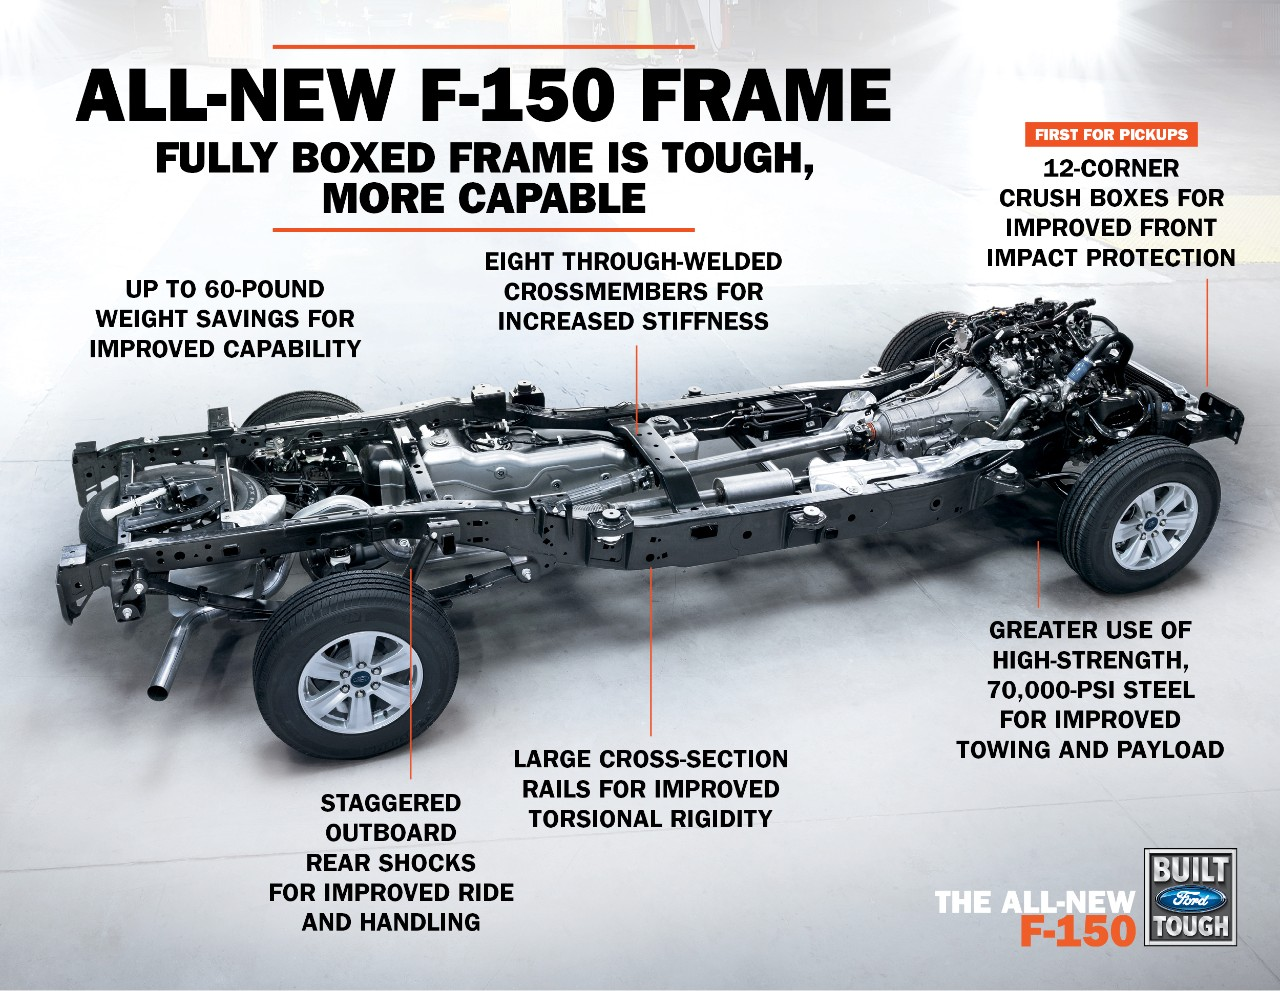 2015 Ford F150 Frame Creates Better Performance The News Wheel. F150 Frame. Ford. 2015 Ford F150 Engine Diagram At Scoala.co